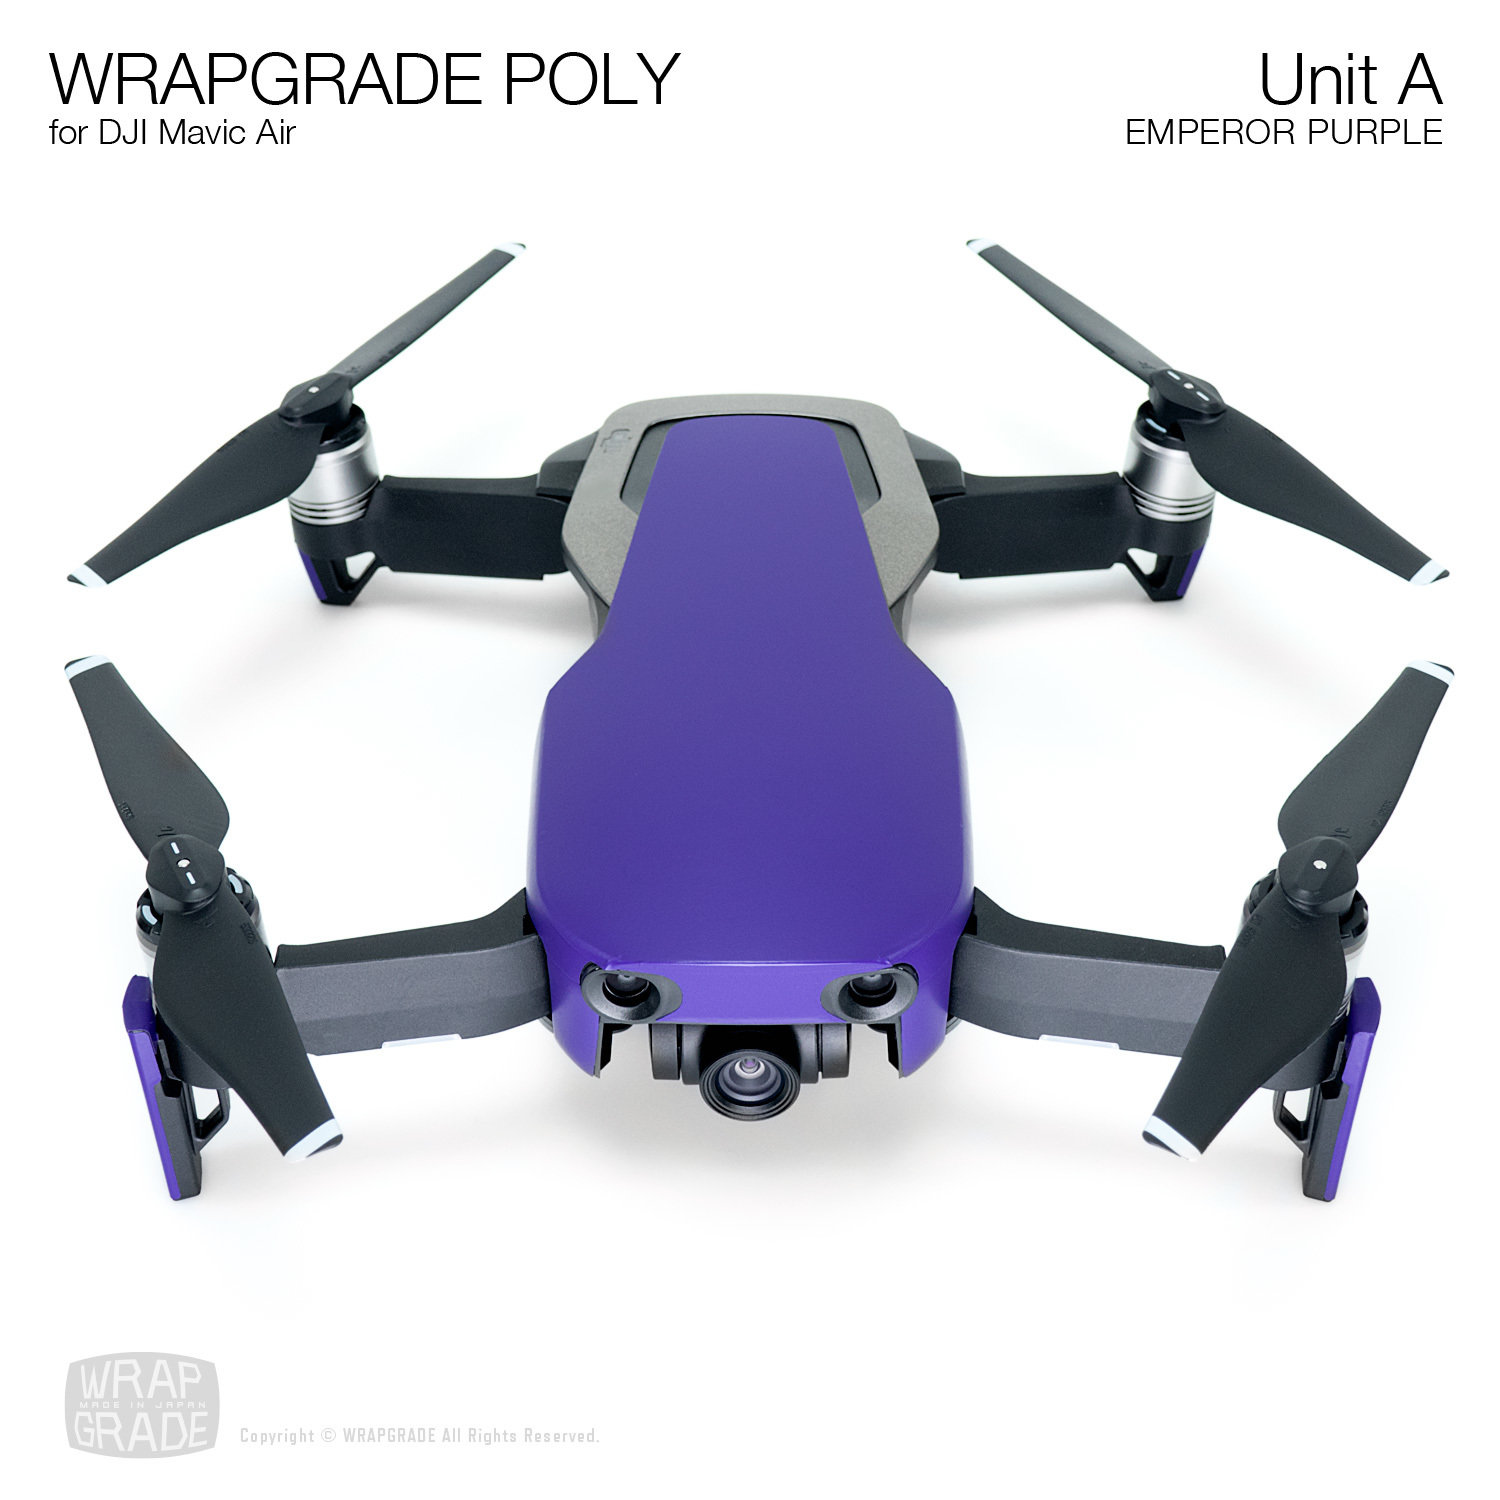 Wrapgrade Poly Skin for DJI Mavic Air | Unit A (EMPEROR PURPLE)